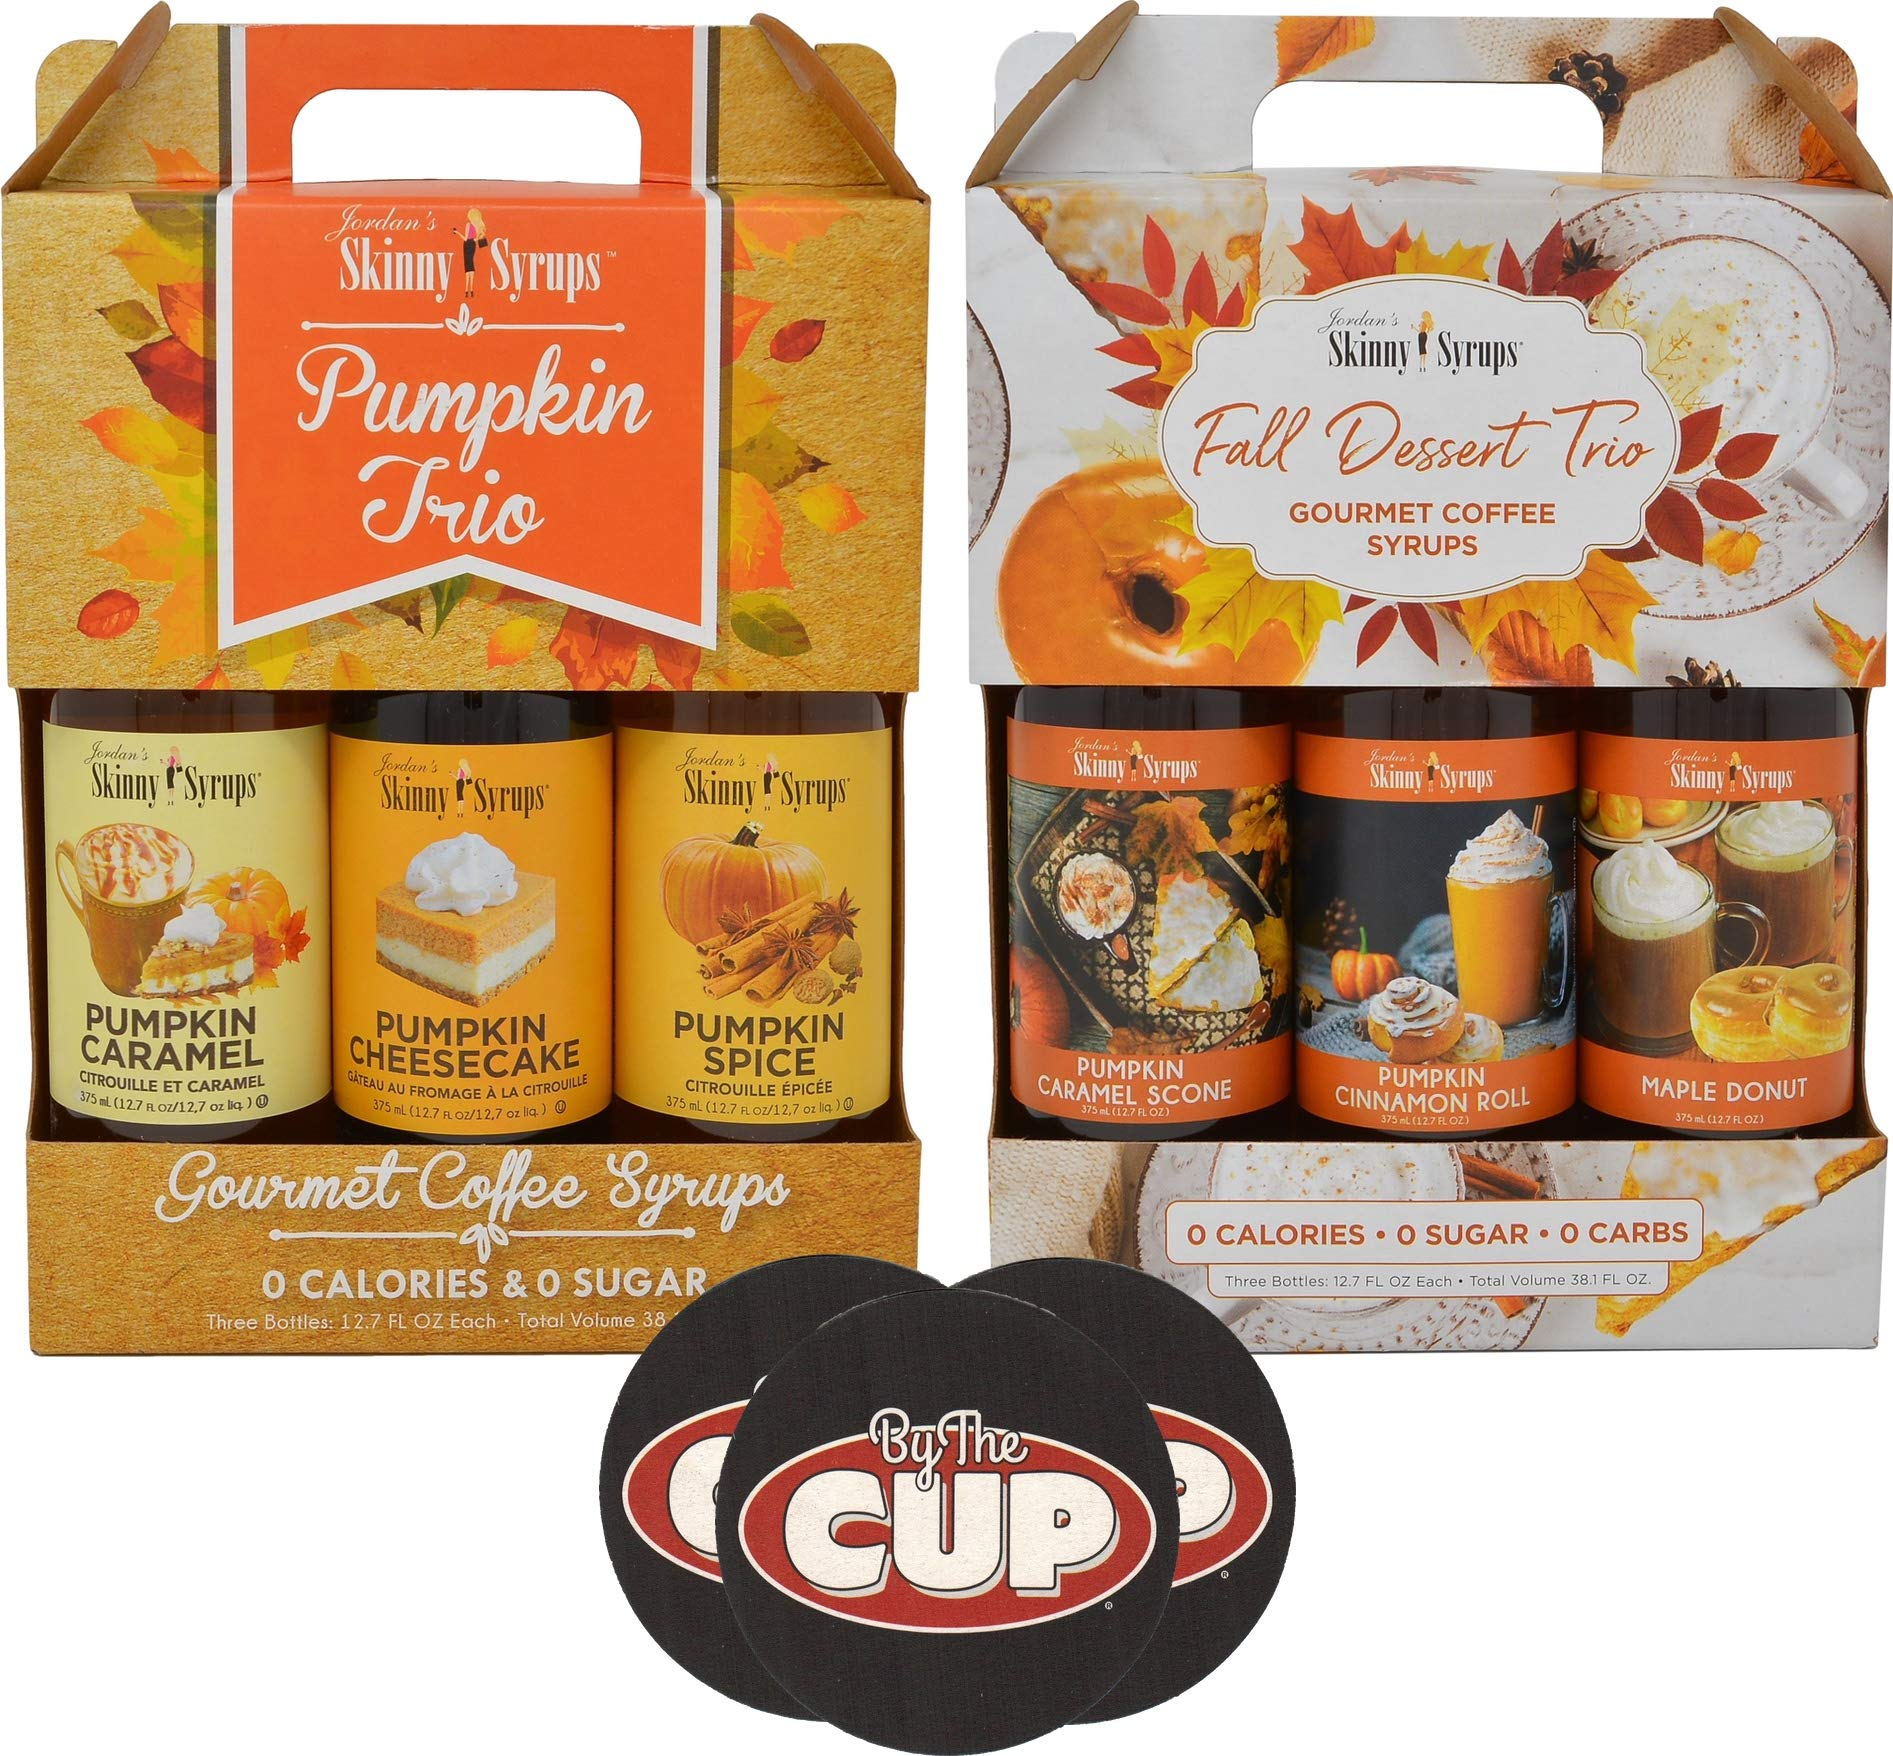 Jordan's Sugar Free Skinny Syrups Pumpkin and Fall Desserts Trio Gift Boxes 375 ml Bottles (6 Flavors Total) with By The Cup Coasters by By The Cup